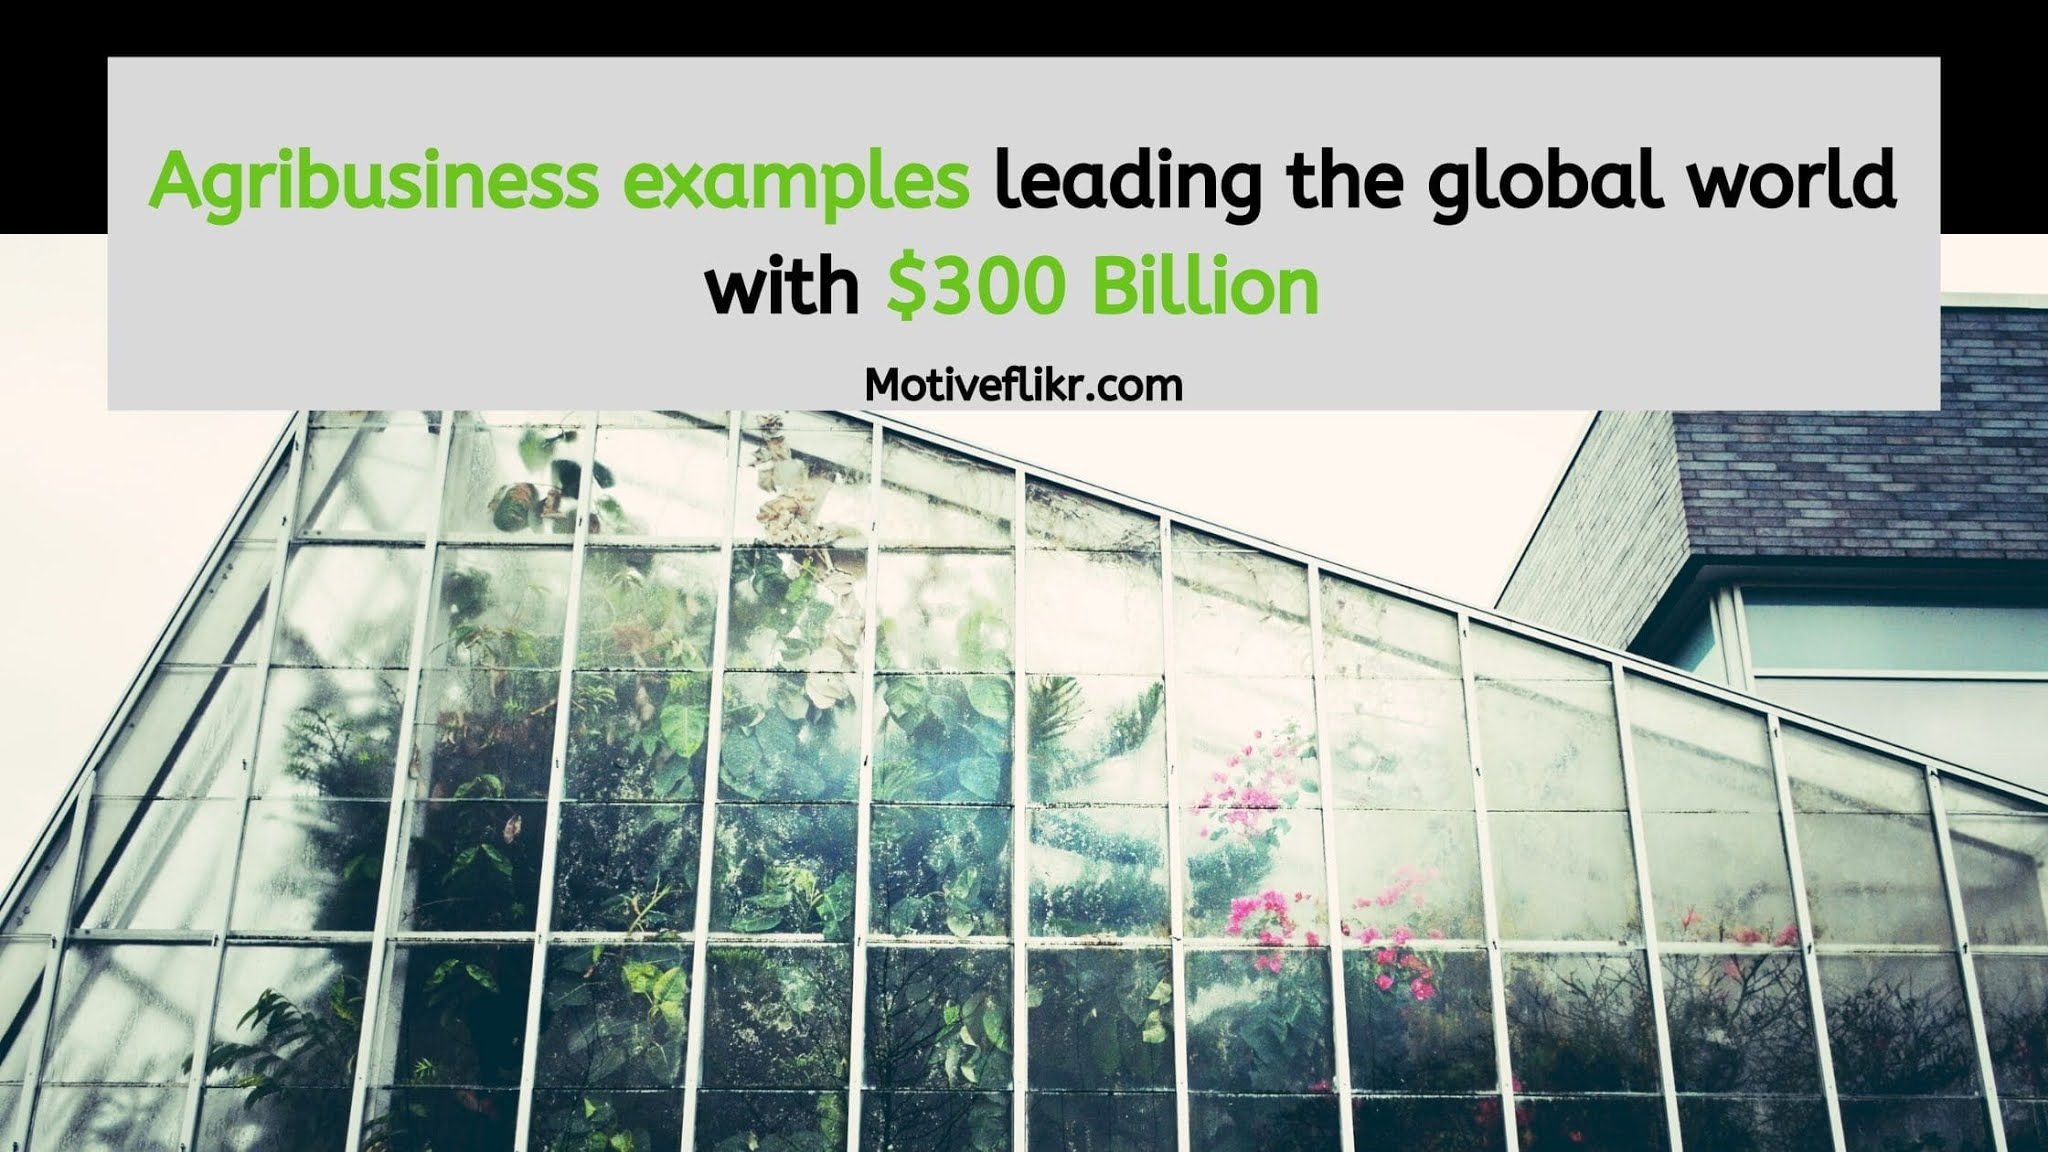 Agribusiness examples leading the global world with 300 Billion Dollars